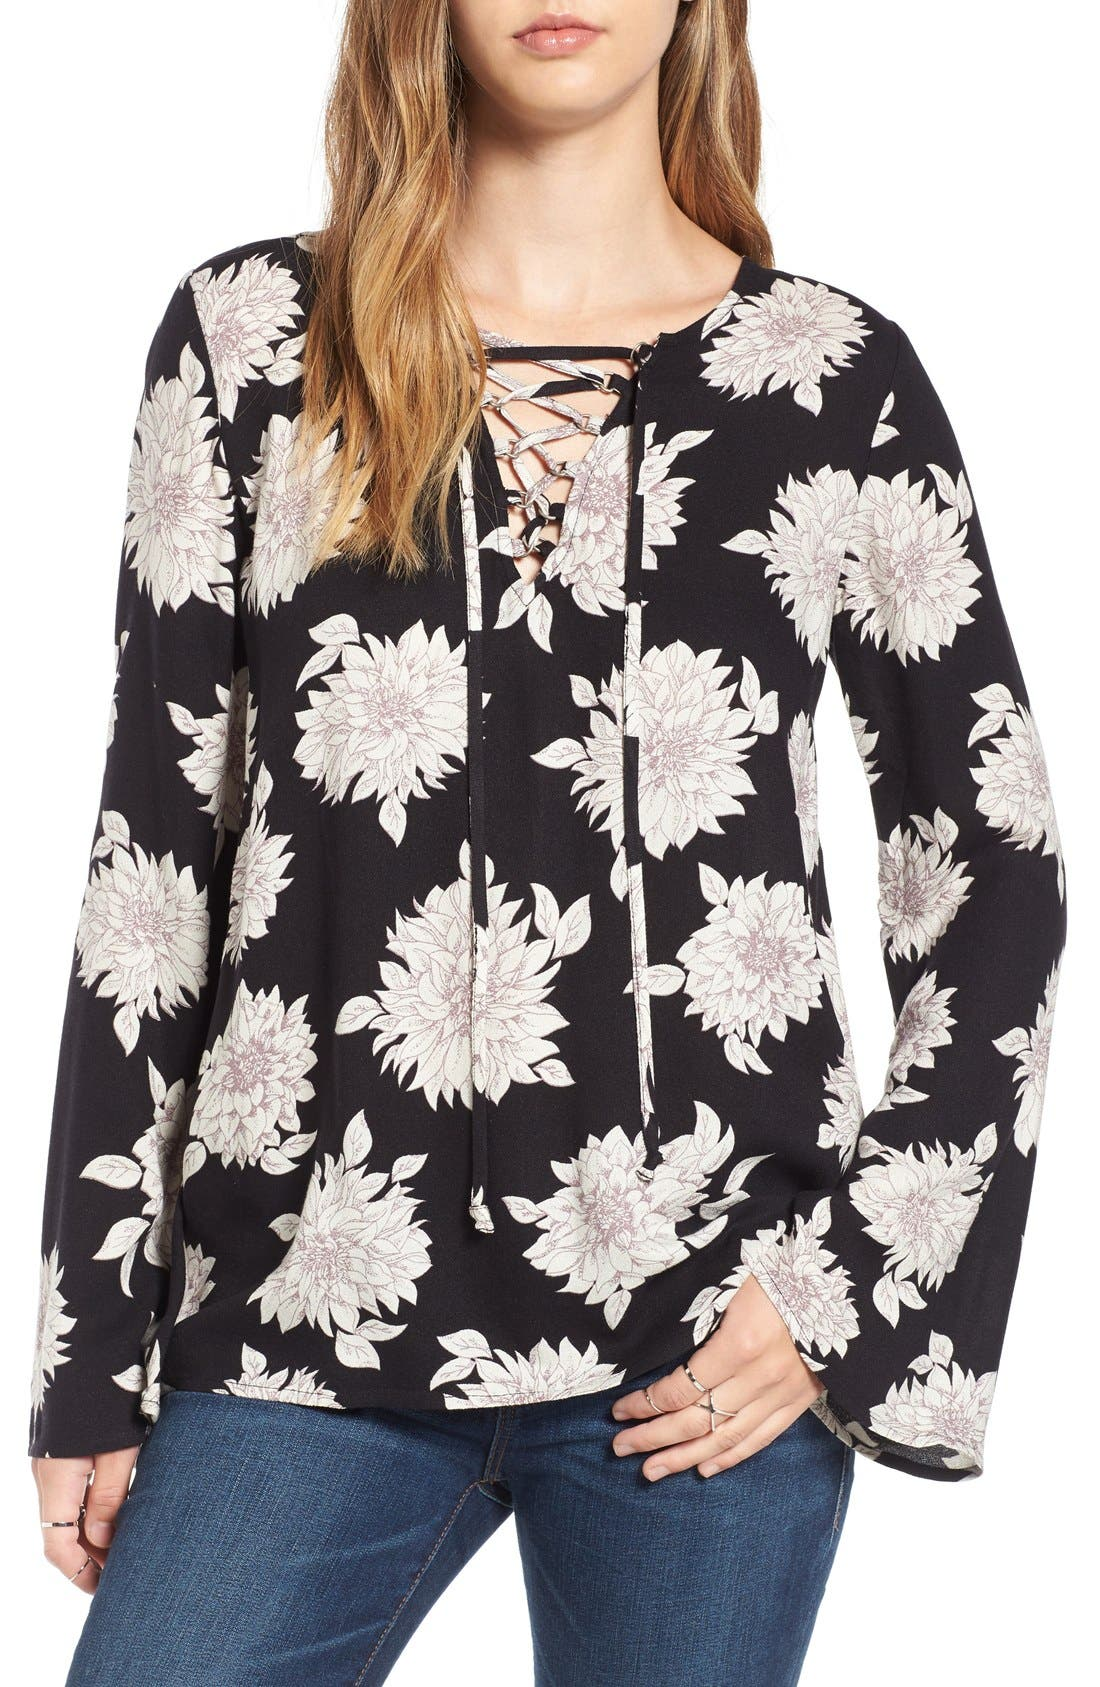 Main Image - Sun & Shadow Floral Print Lace-Up Top